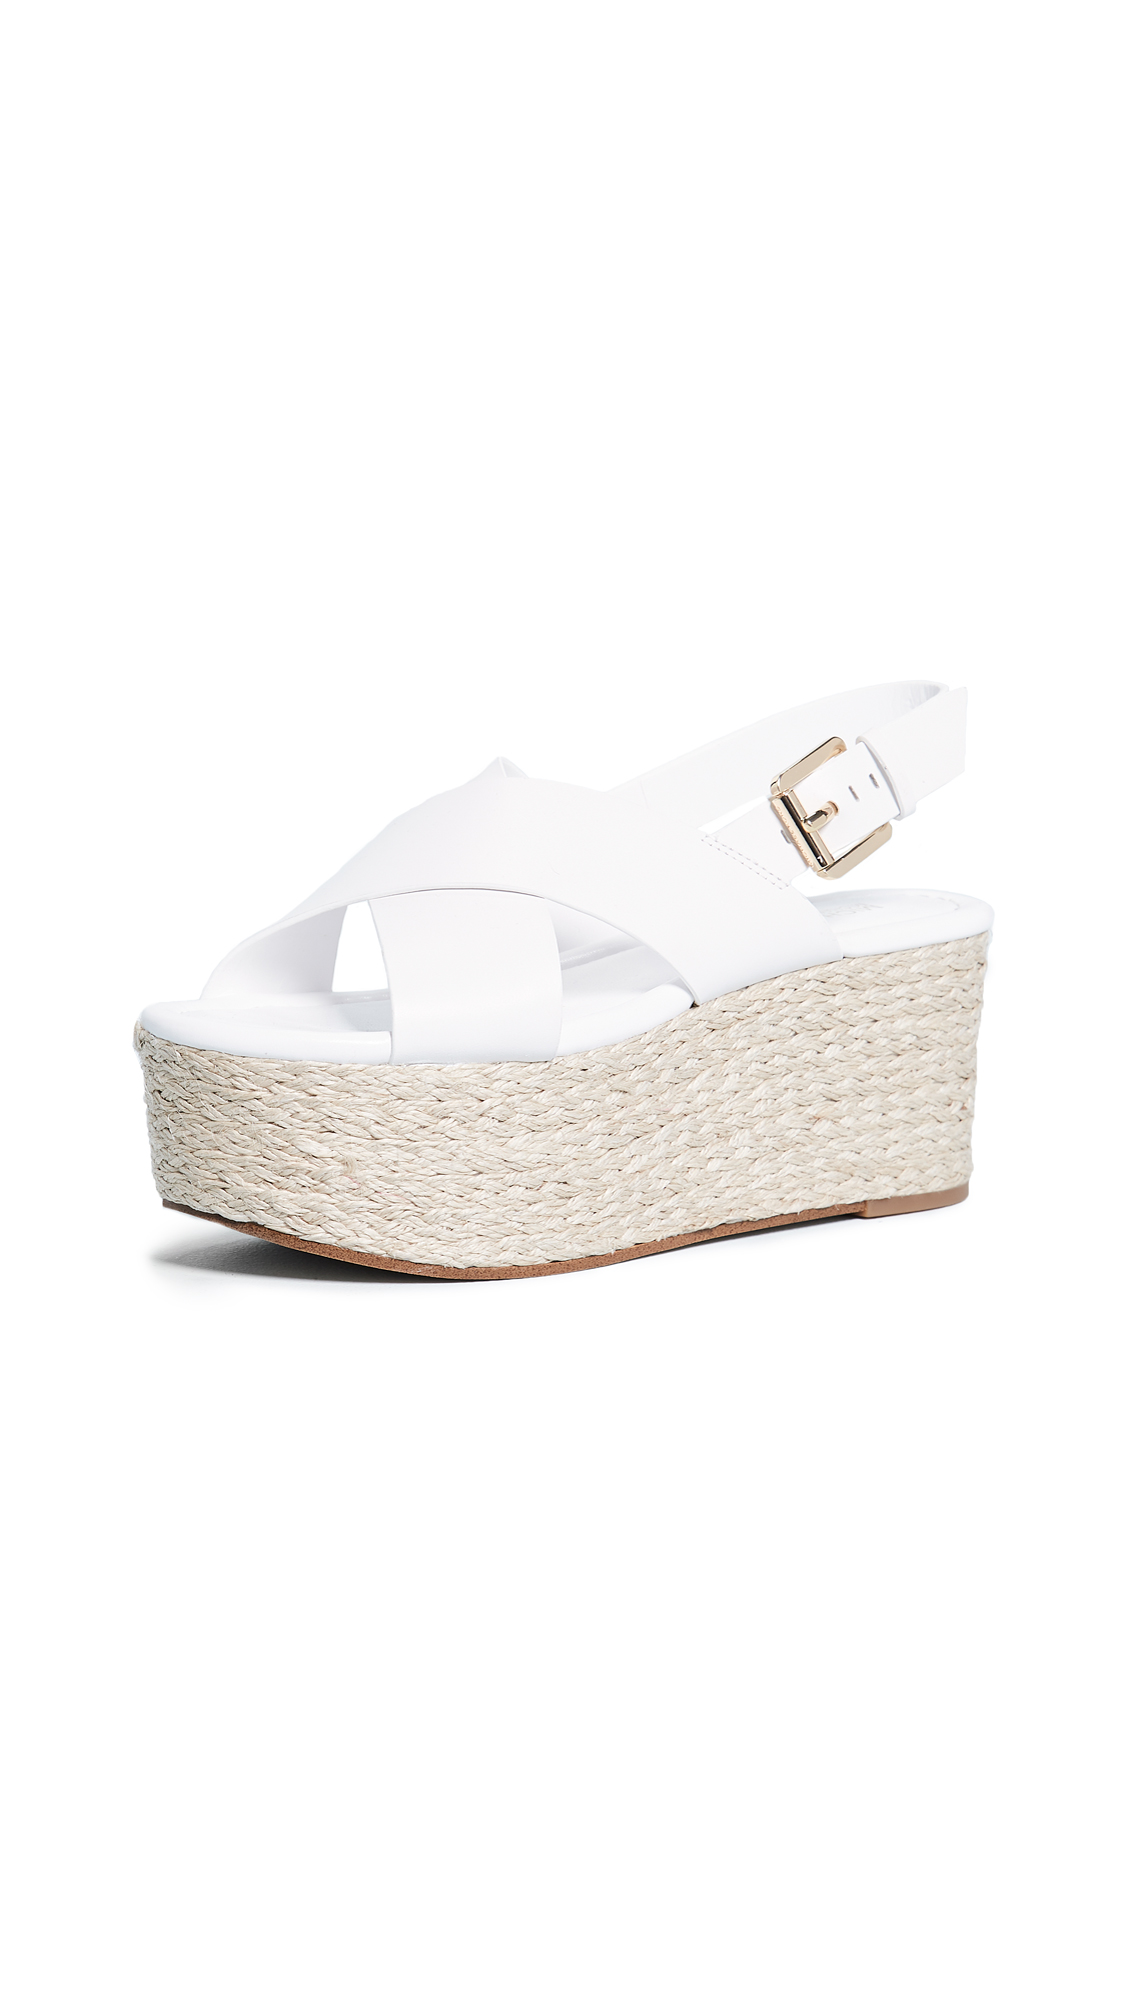 MICHAEL Michael Kors Jodi Mid Espadrille Wedges - Optic White